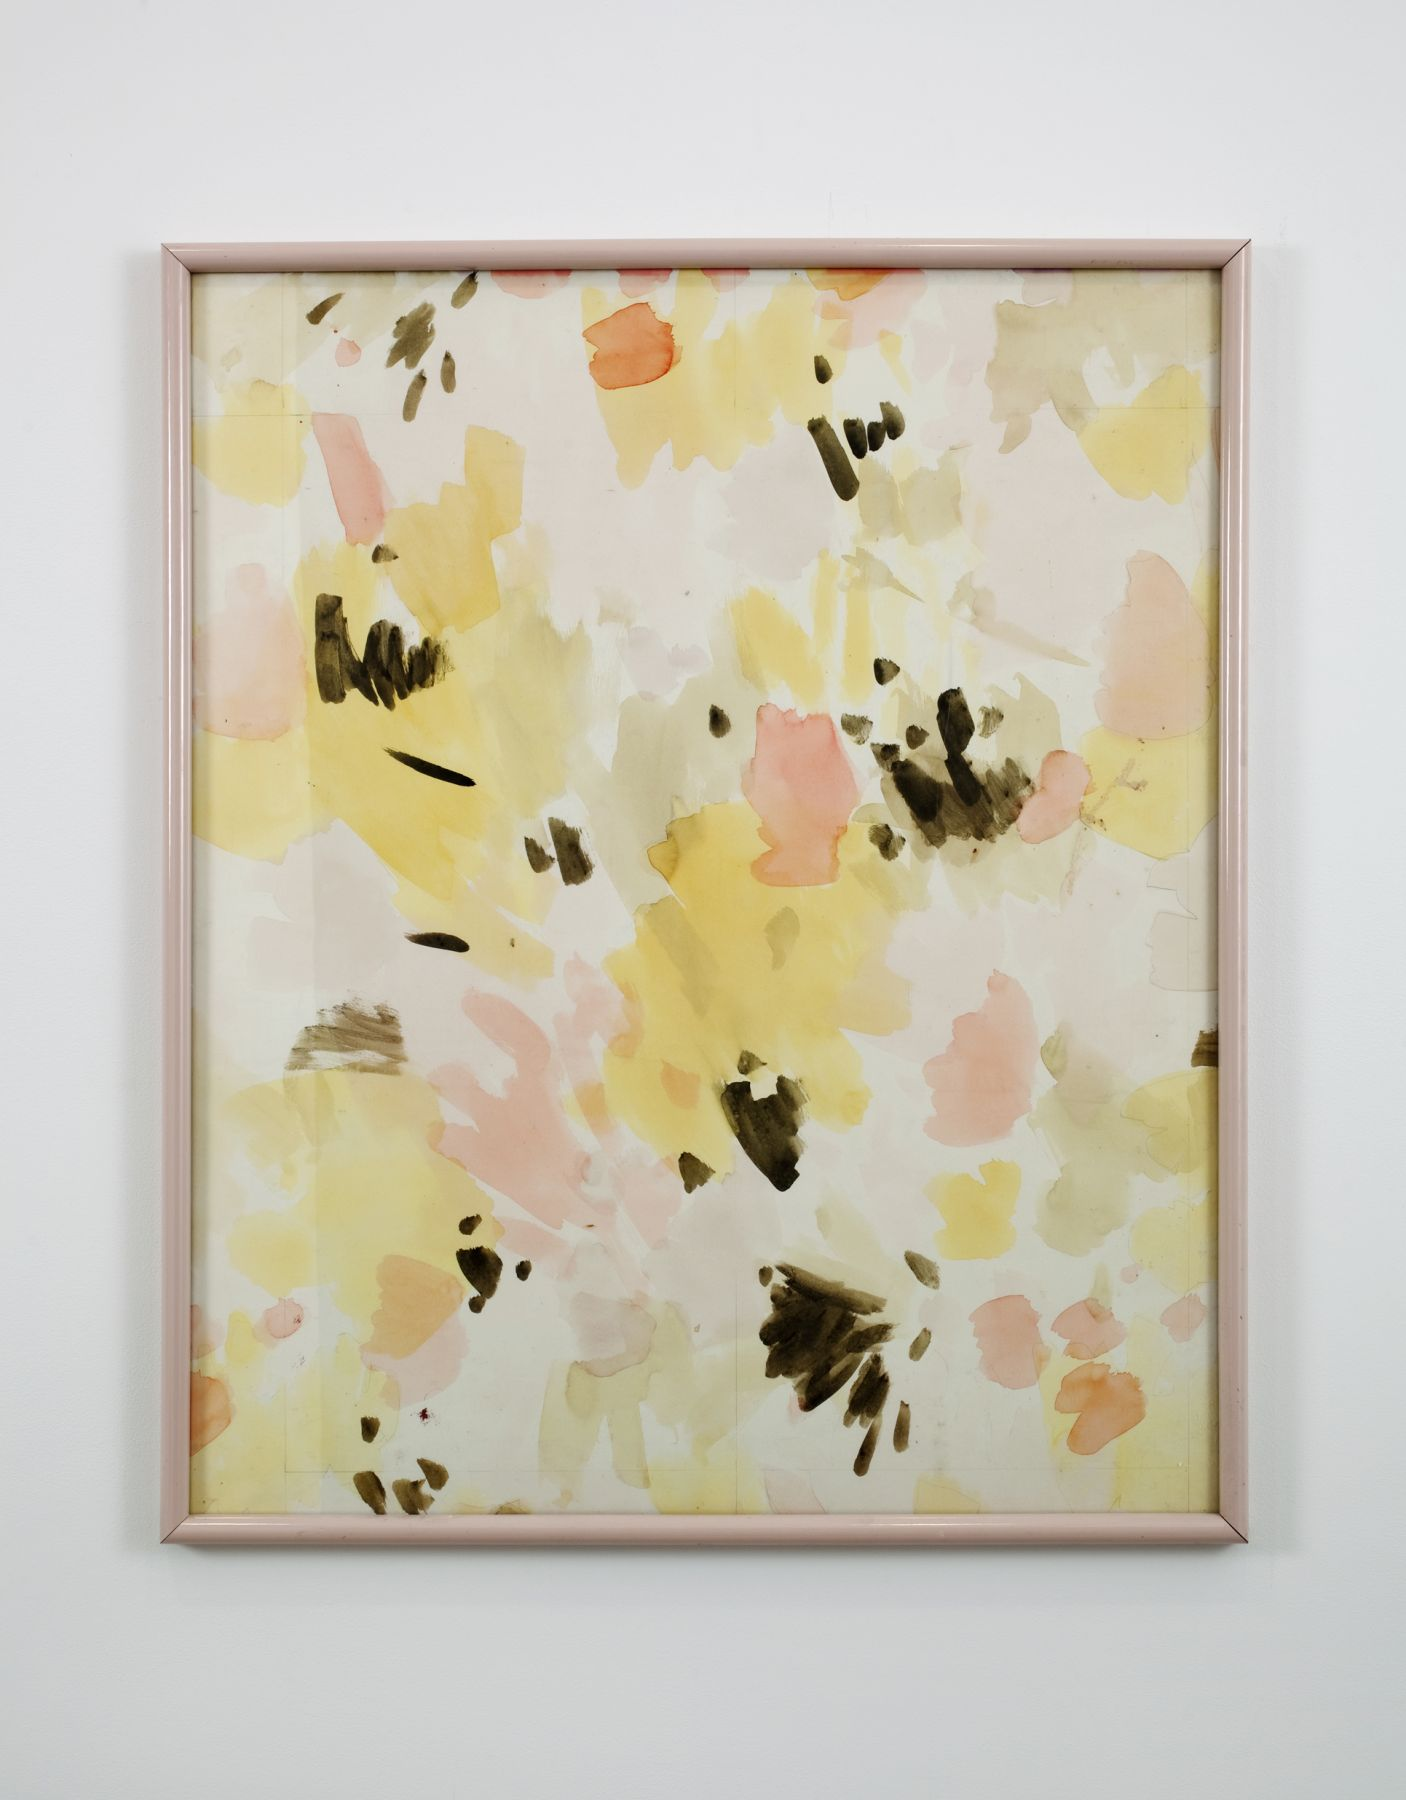 Gedi Sibony, Untitled, 2010, framed watercolor, 36 x 30 1/8 x 1 1/4 inches